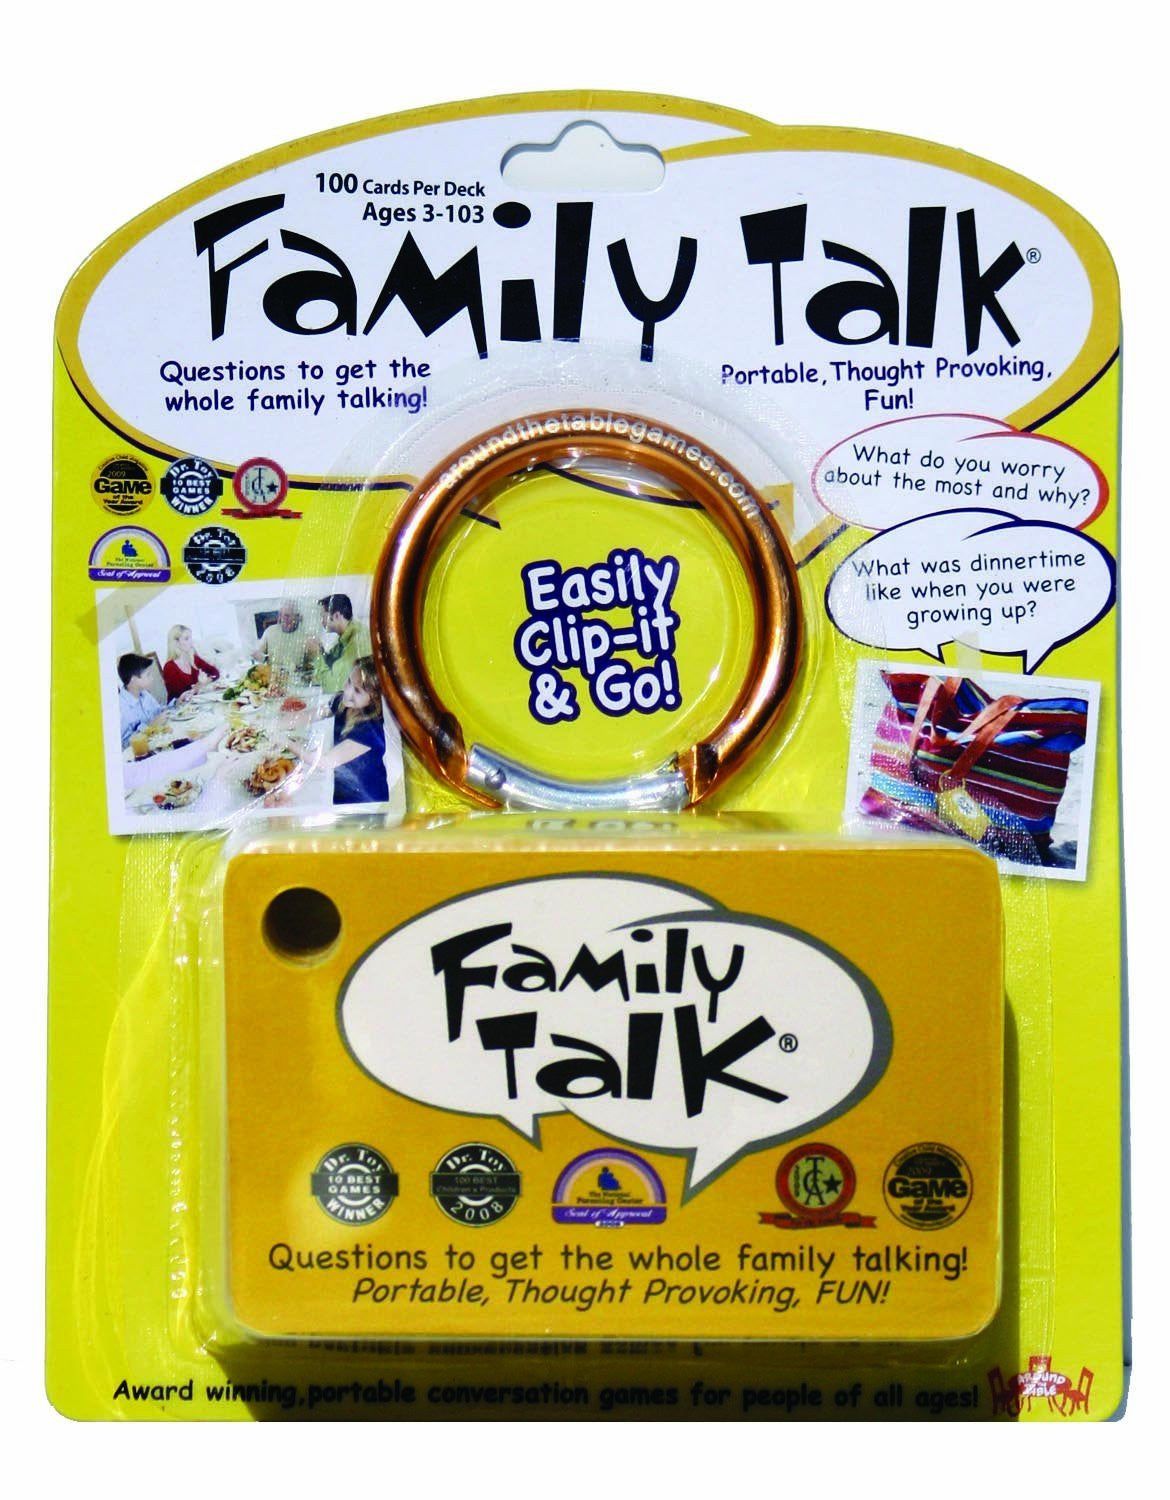 Travel Games-Family Talk - Question Cards to get the Family Talking